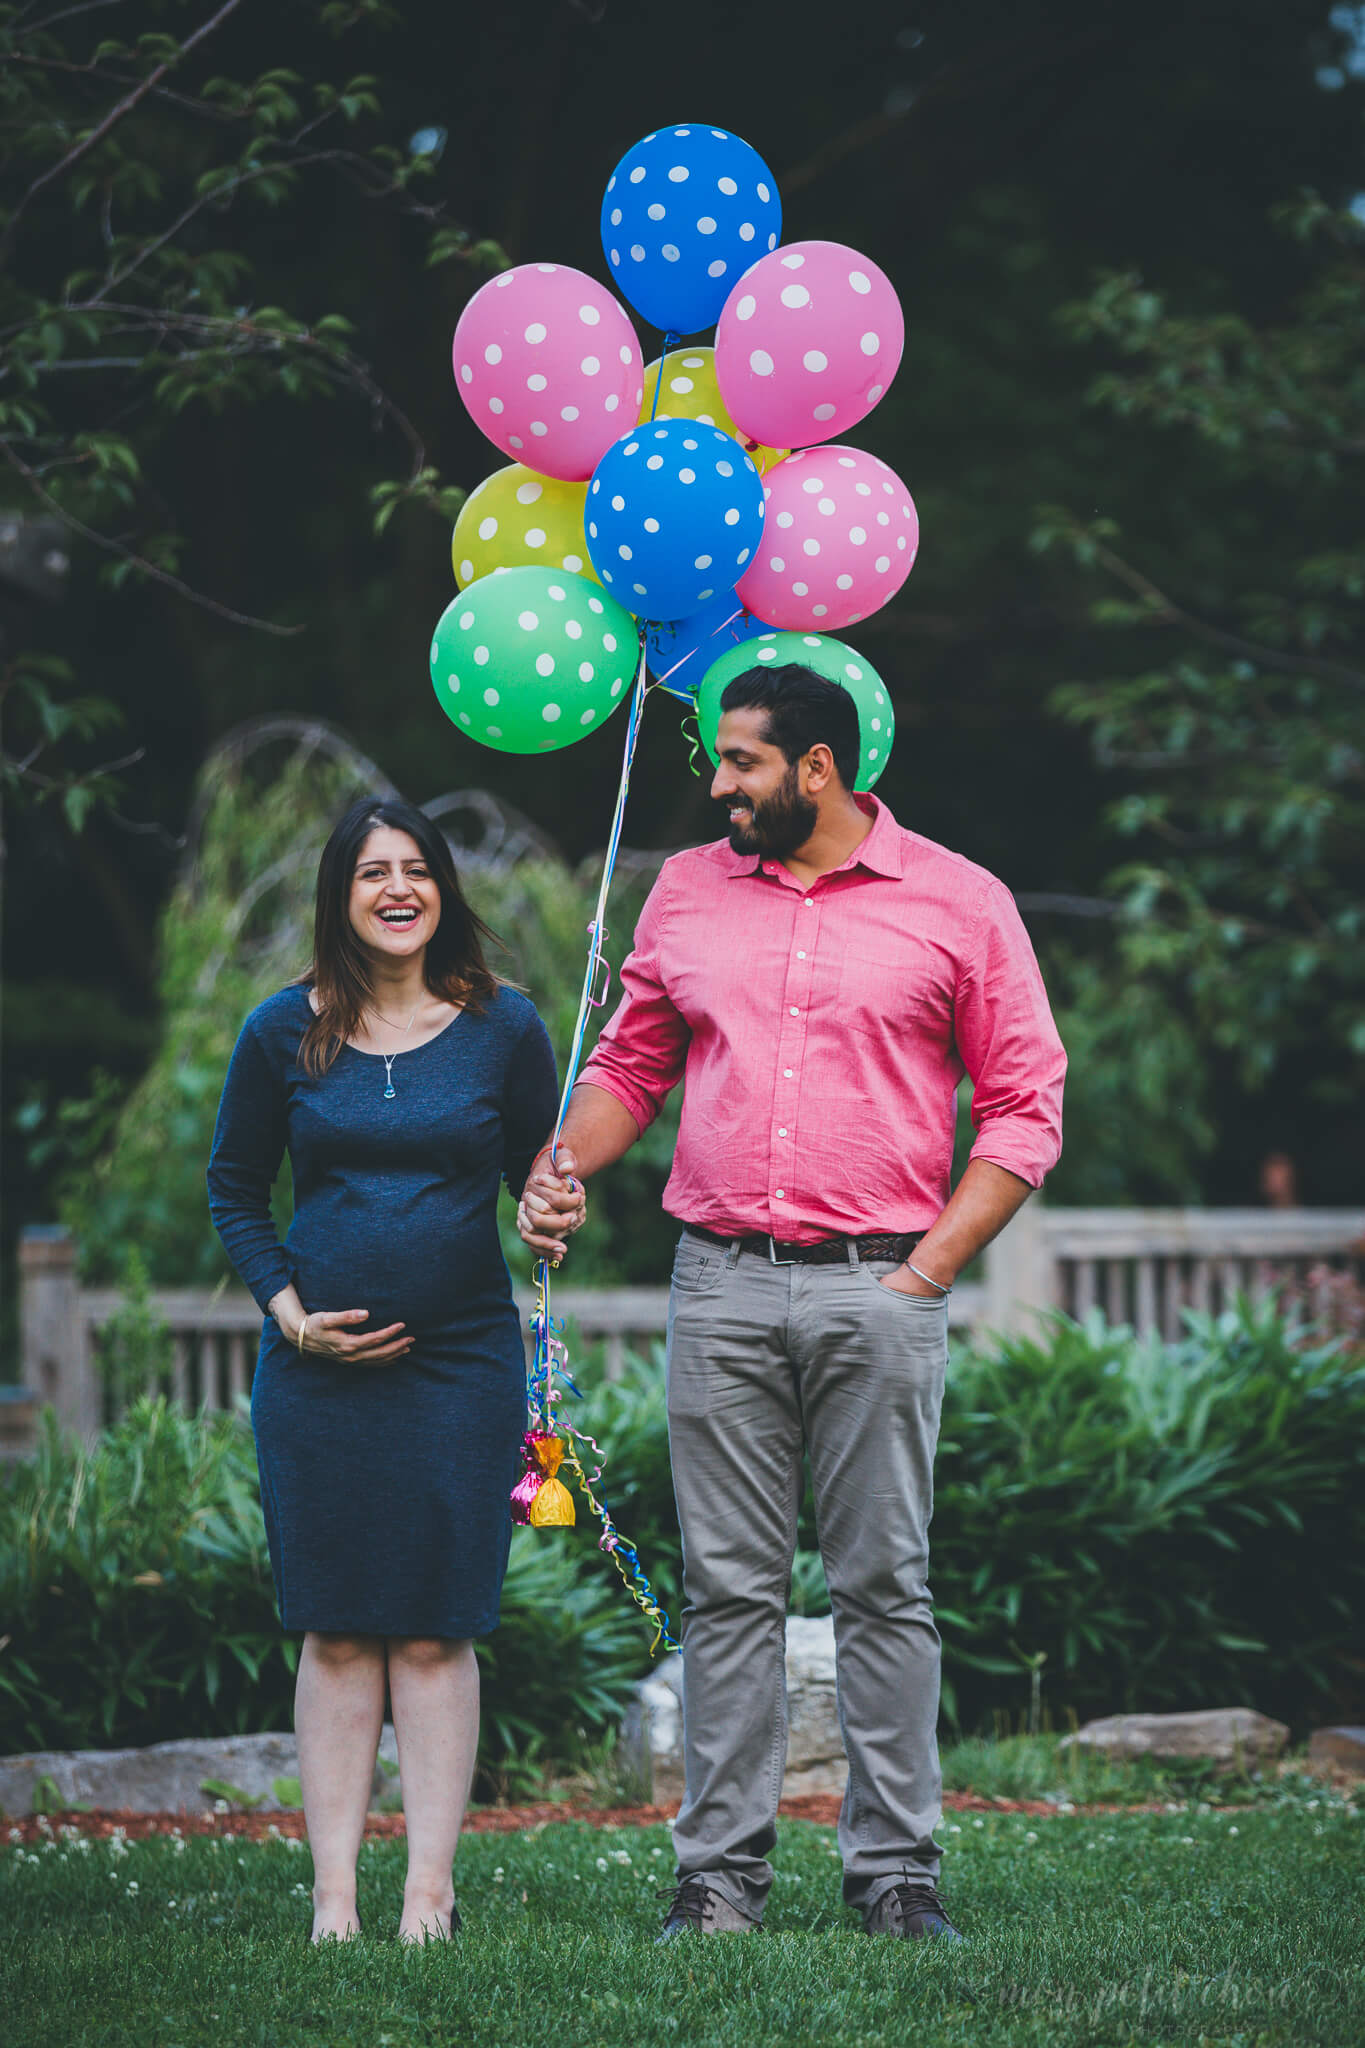 Pregnany mom to be hold ballons and laughing during a maternity shoot in Kariya Park in Toronto